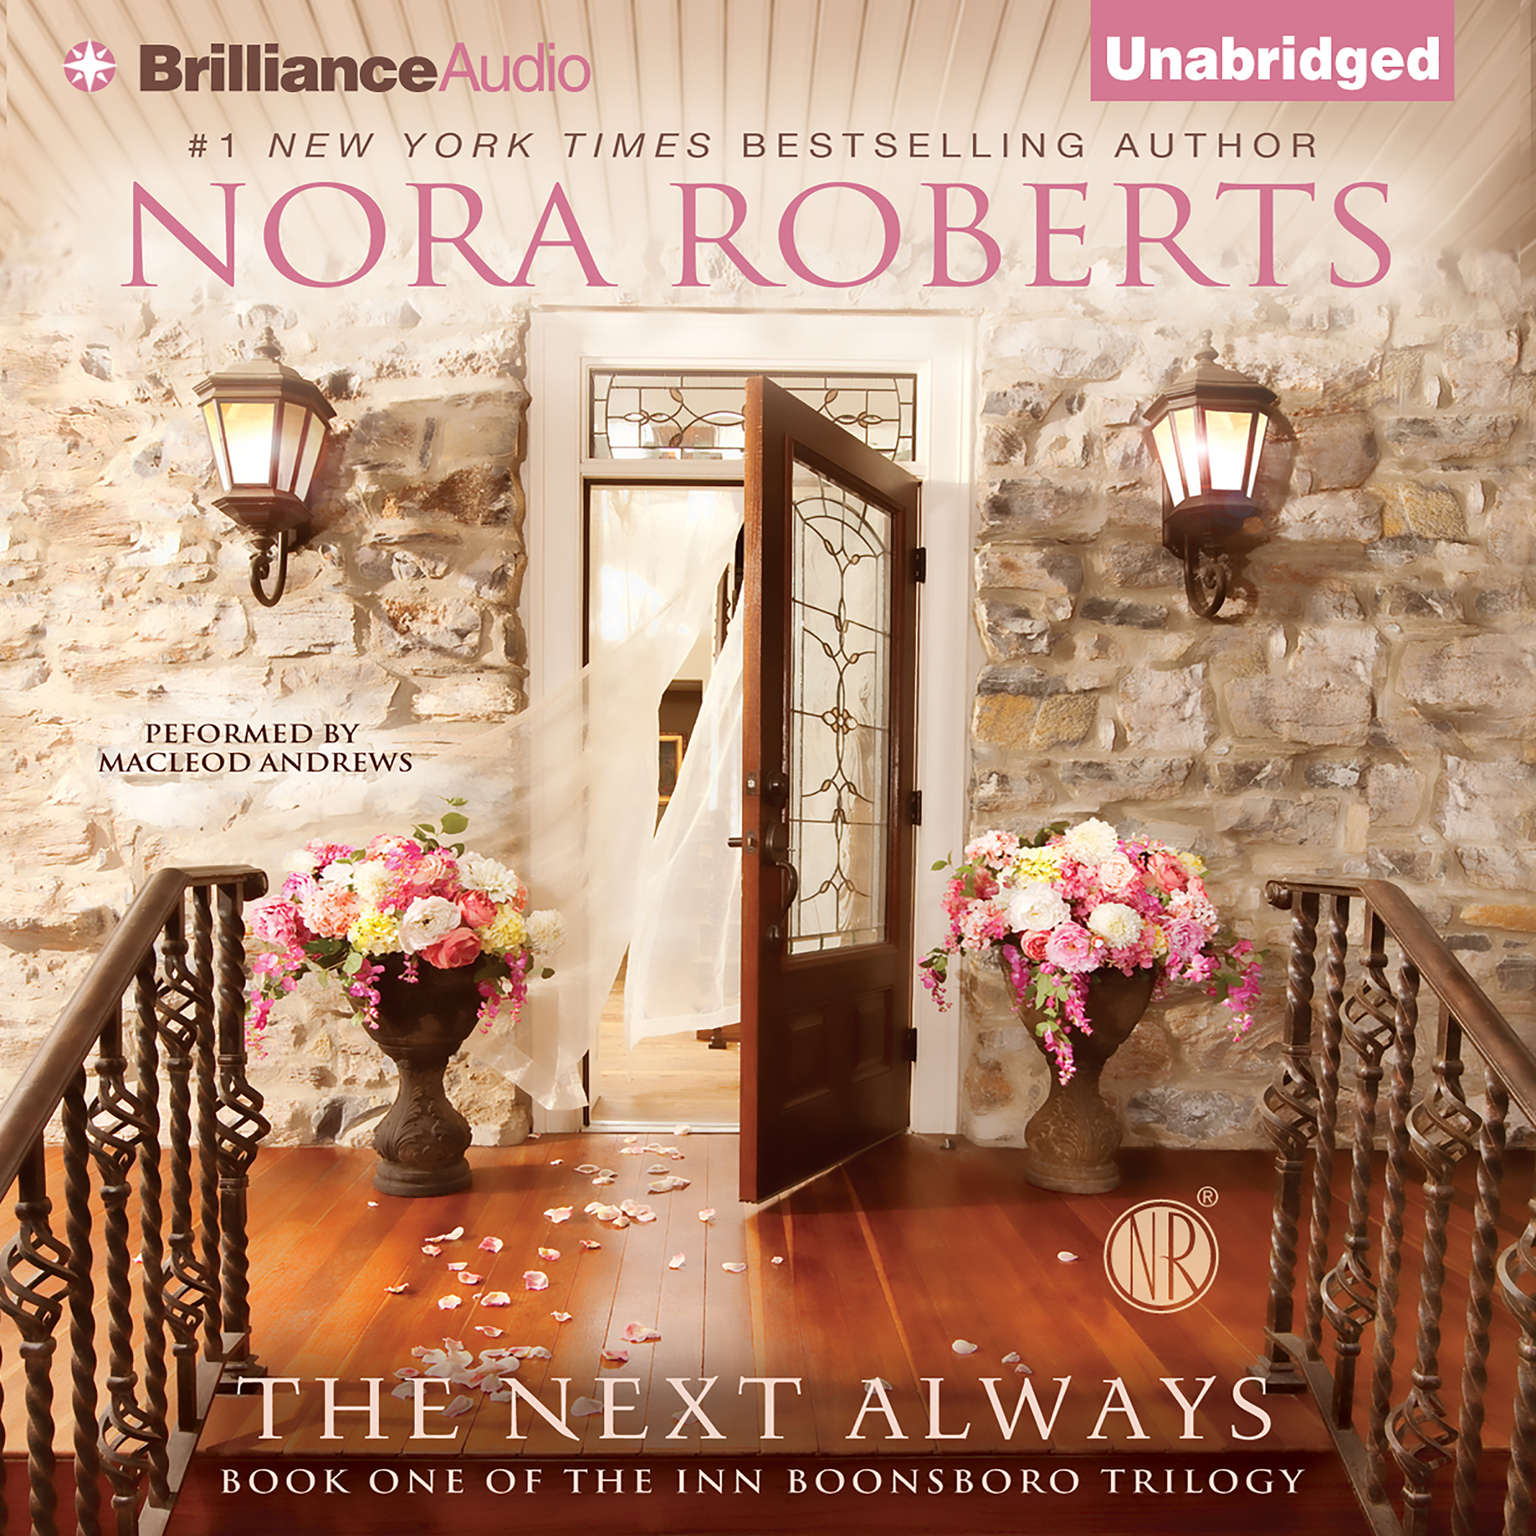 nora roberts inn boonsboro trilogy free pdf download